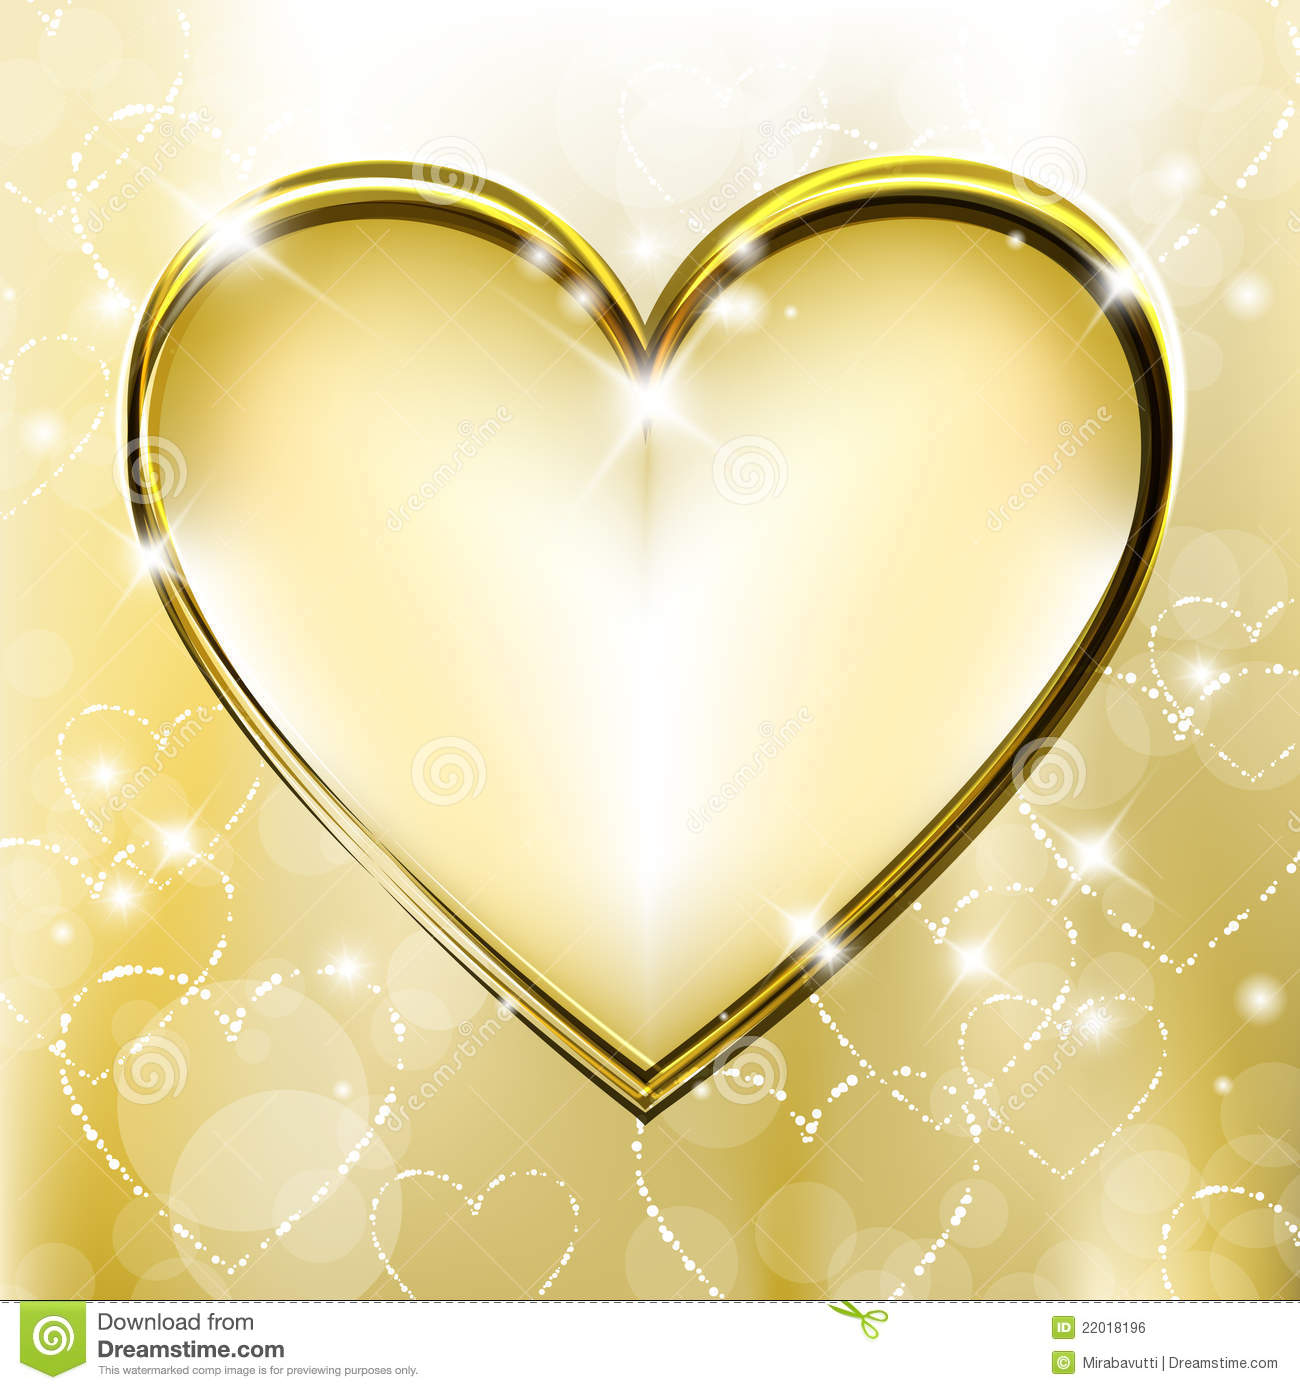 Golden Heart Royalty Free Stock Image - Image: 22018196